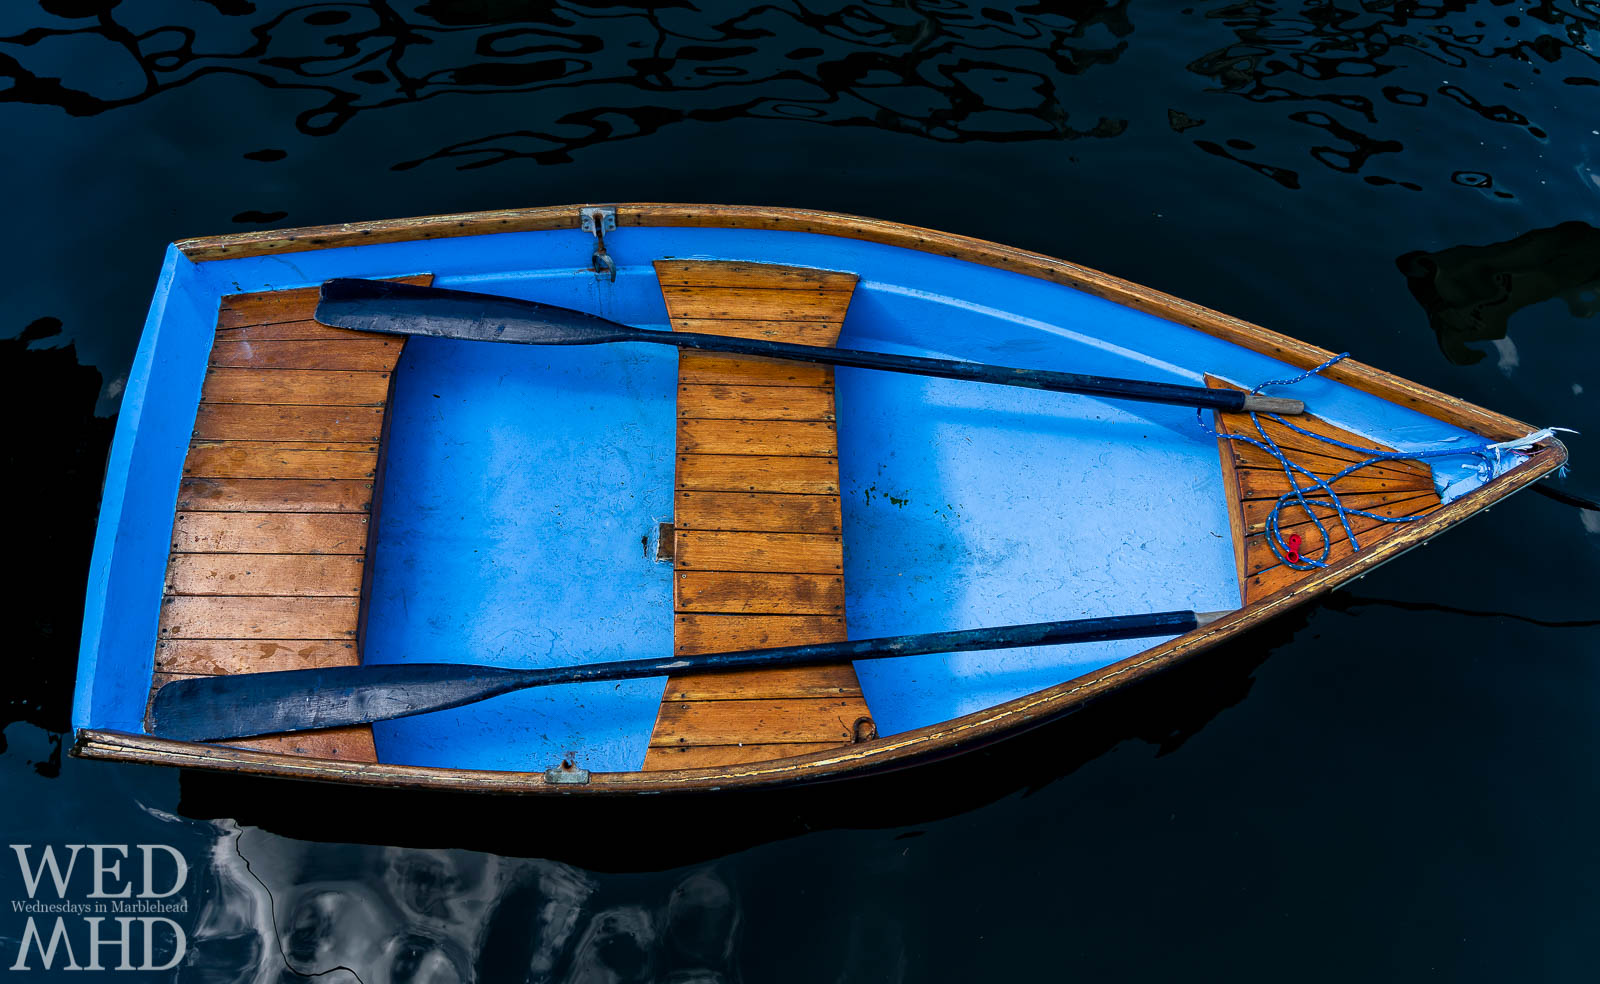 A small blue dinghy is moored in Little Harbor